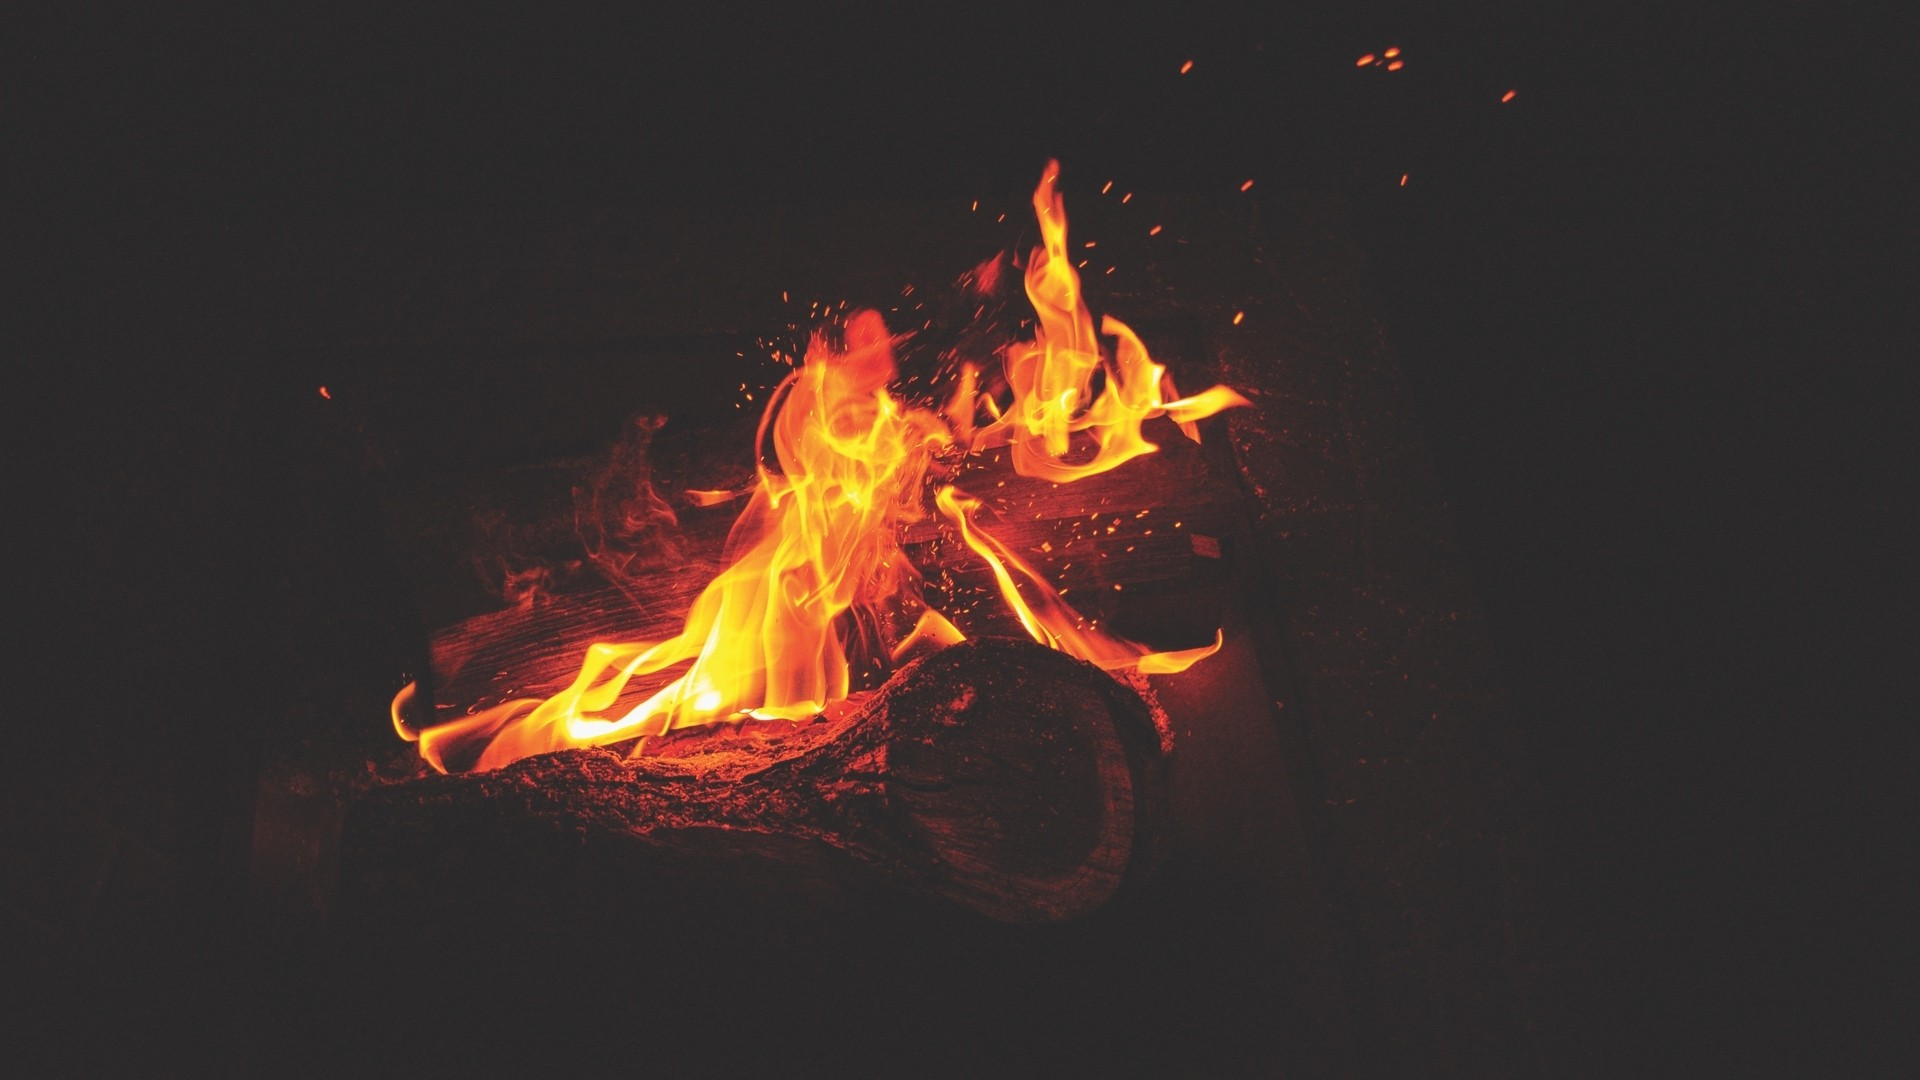 Flame Picture